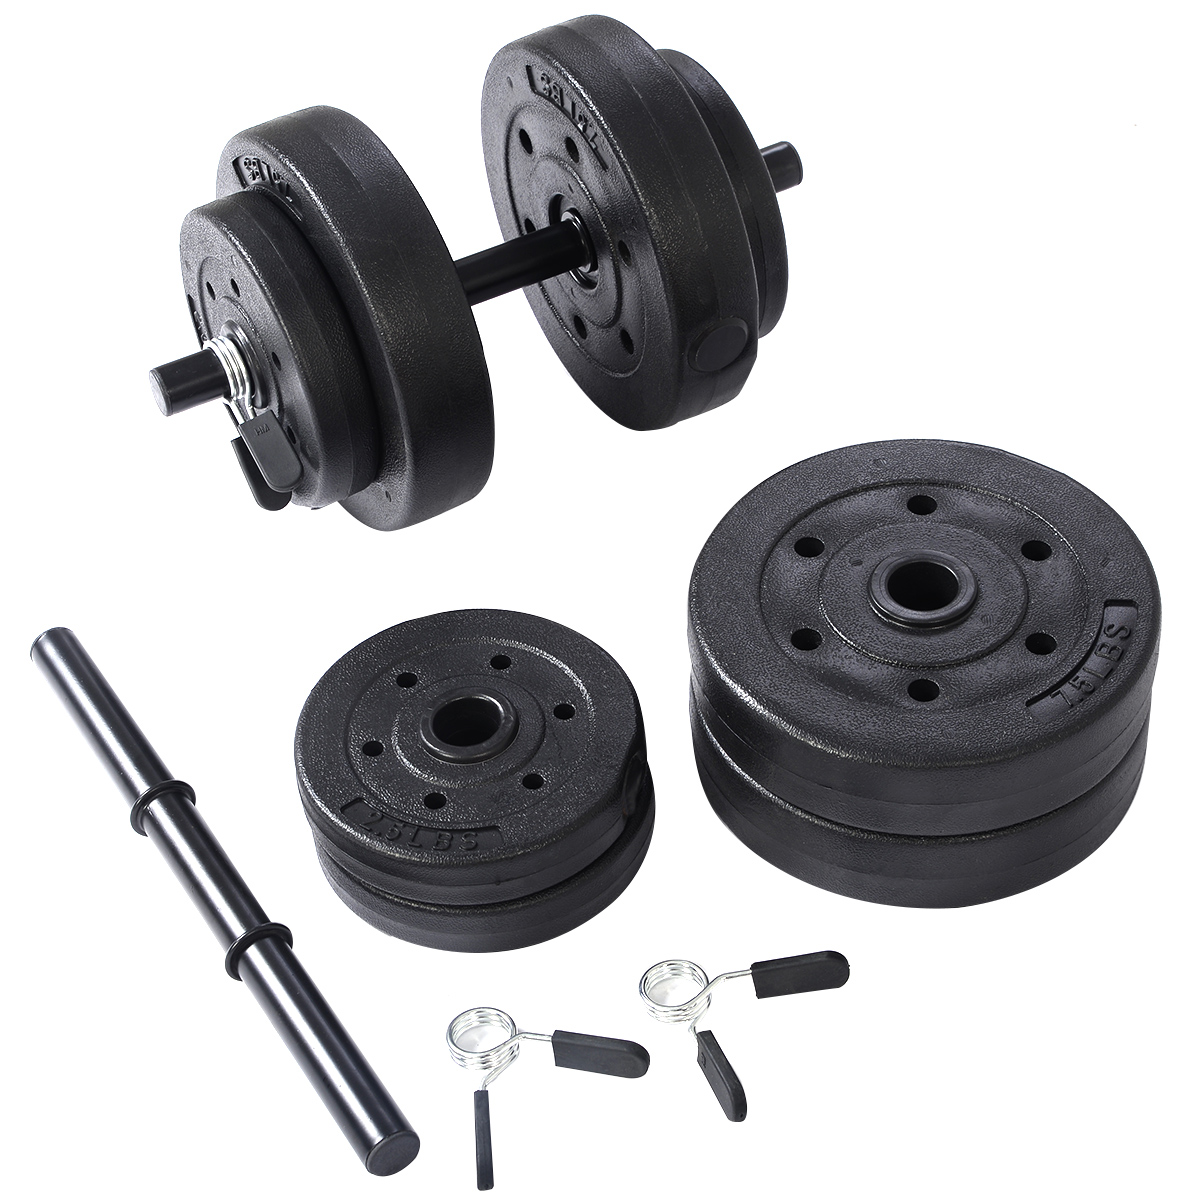 Costway Weight Dumbell Set 40 LB Adjustable Cap Gym Barbell Plates Body Workout